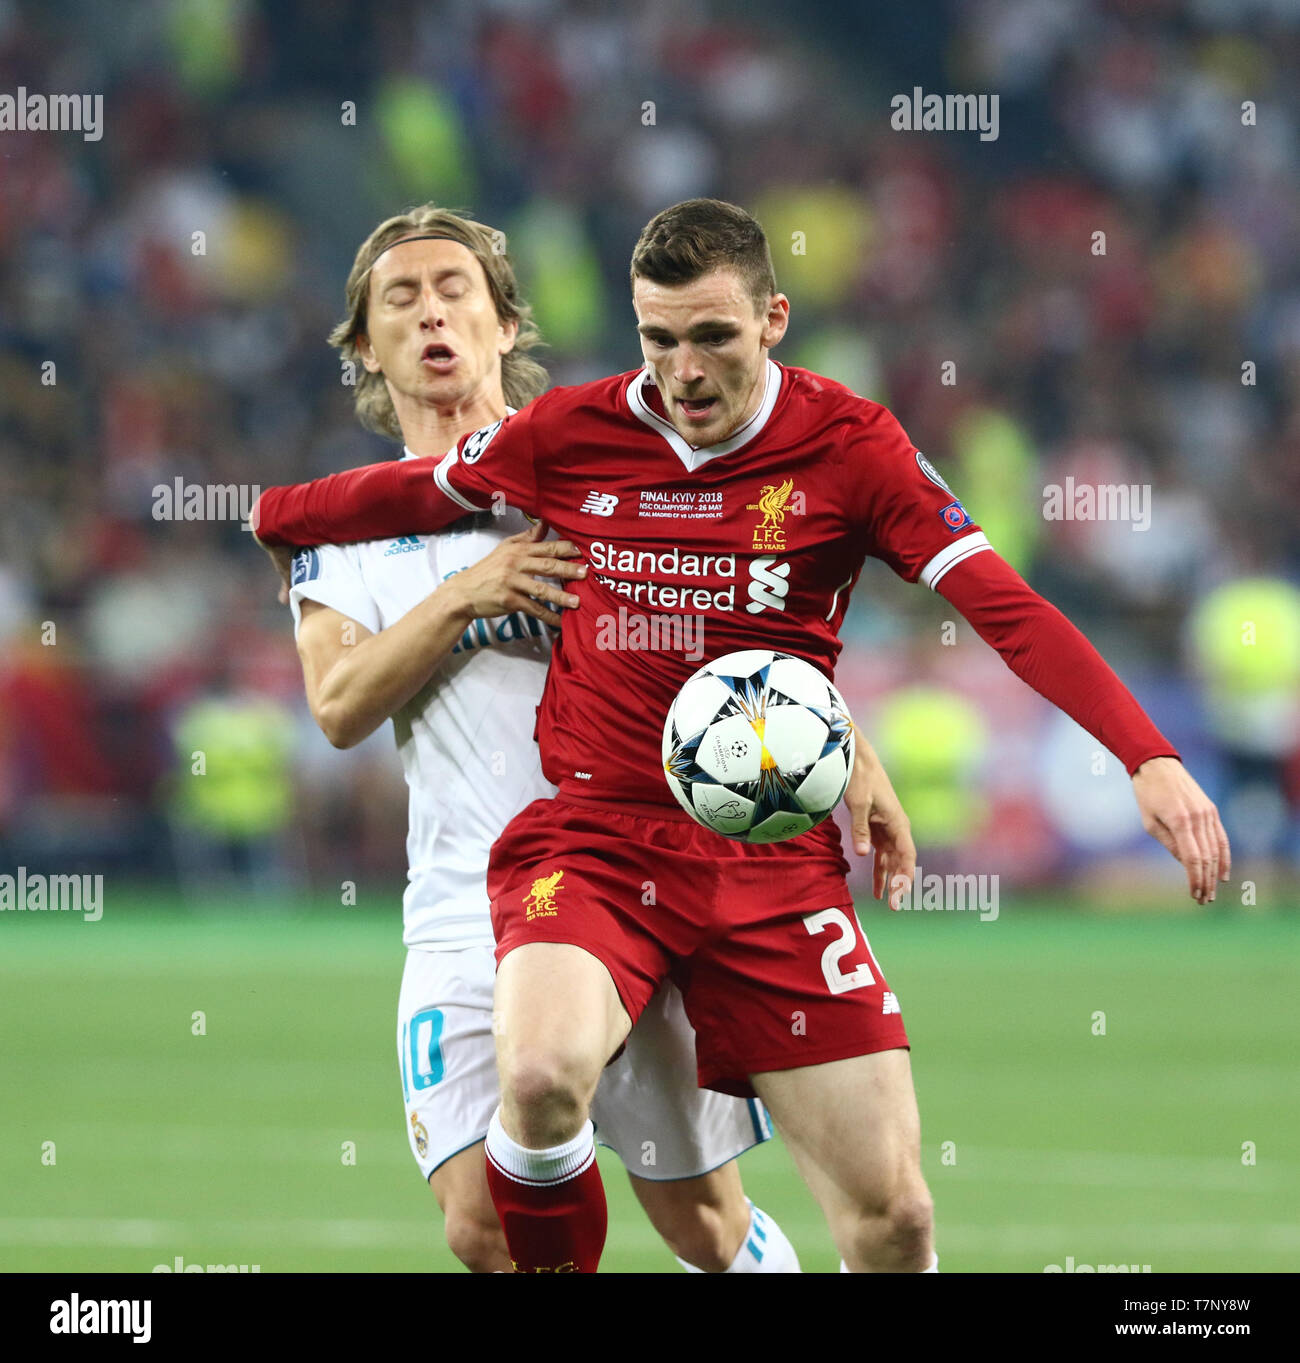 Andy Robertson of Liverpool (R) fights for a ball with Luka Modric of Real Madrid during their UEFA Champions League Final 2018 - Stock Image